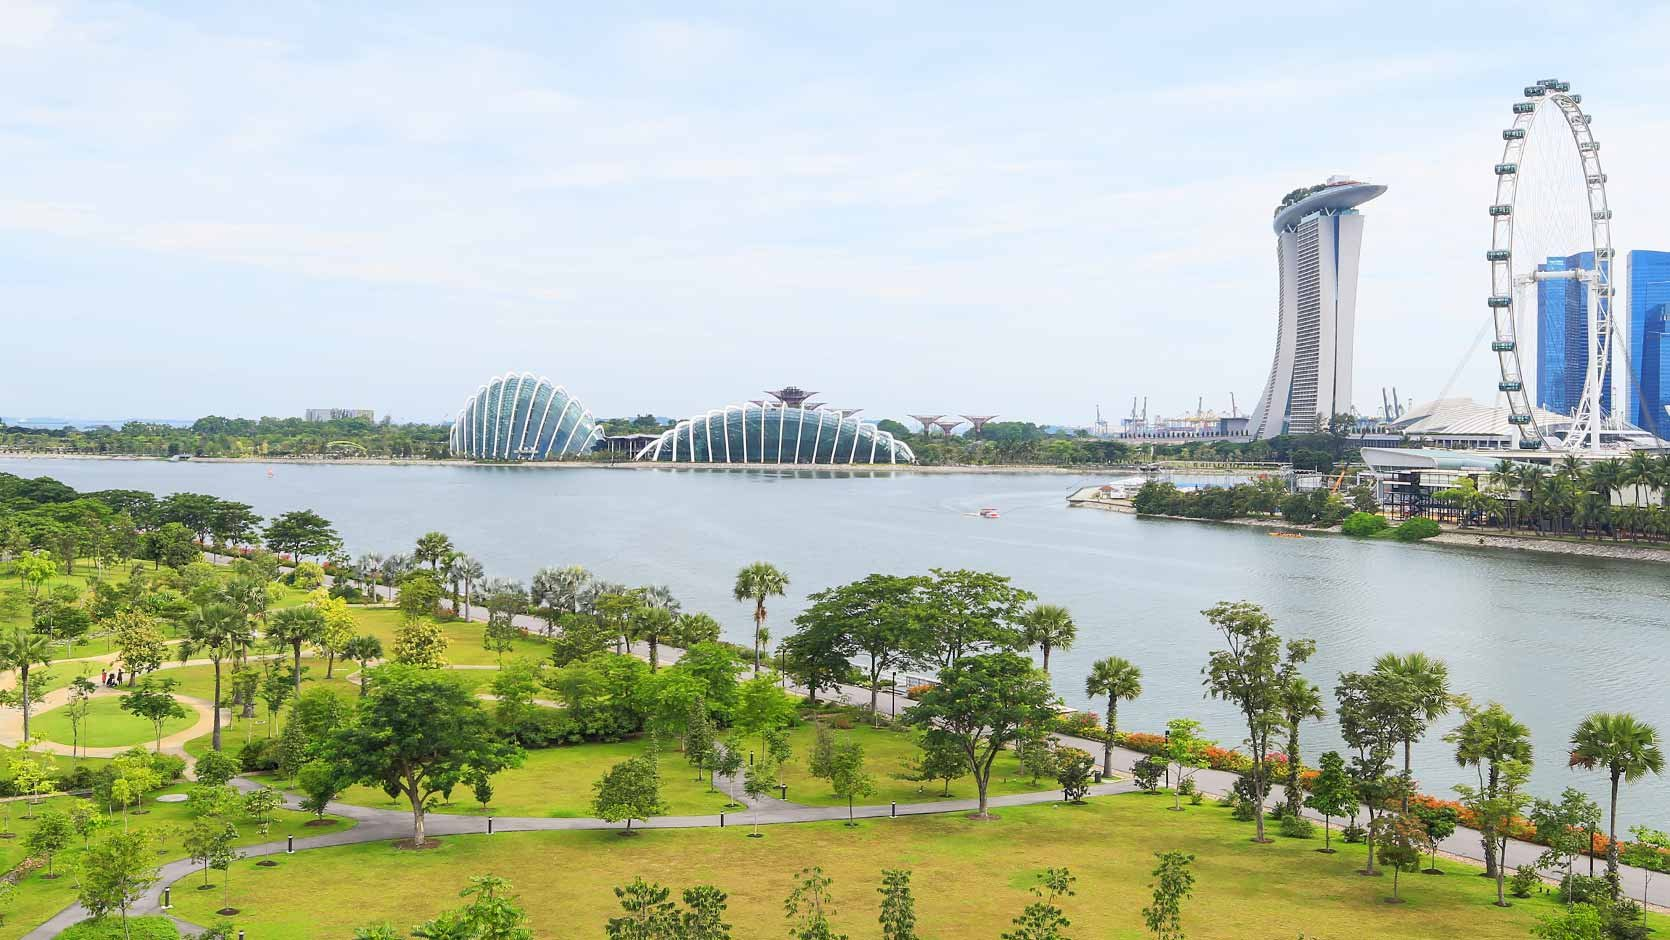 Photo Courtesy: Gardens By The Bay